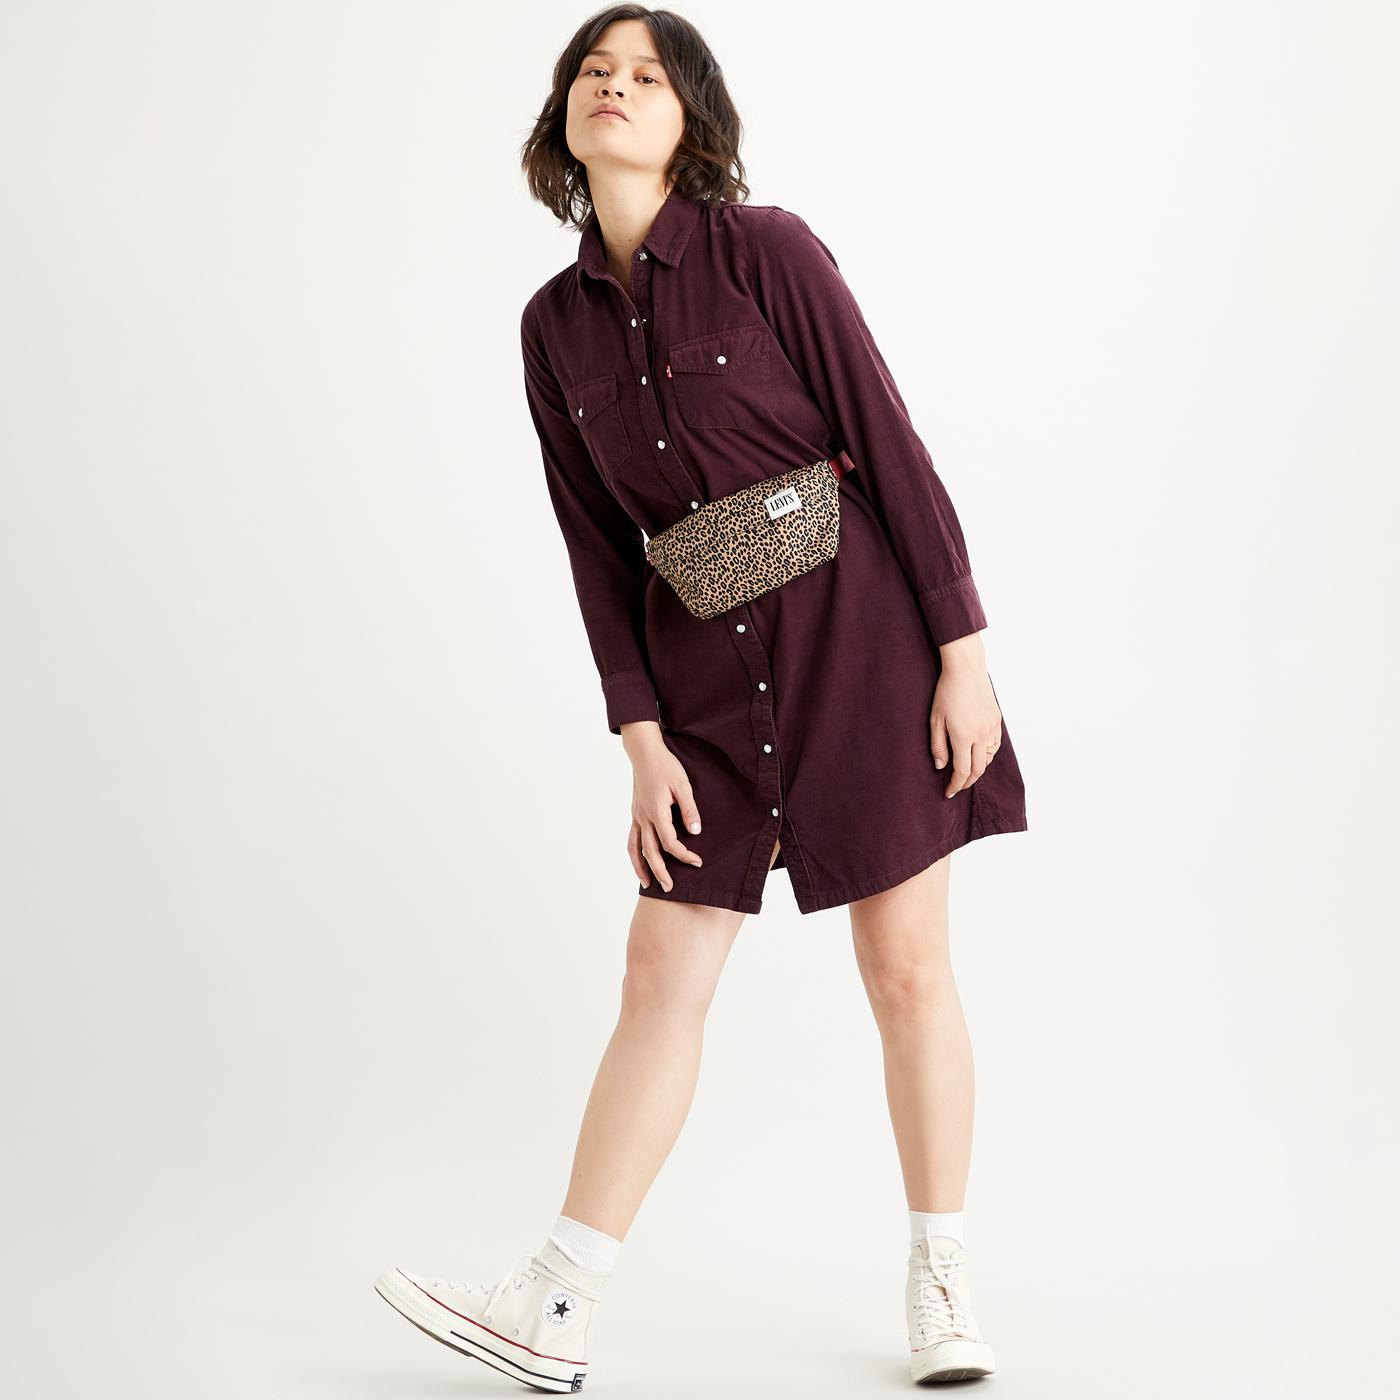 Selma LEVI'S Retro 70s Cord Shirt Dress in Malbec